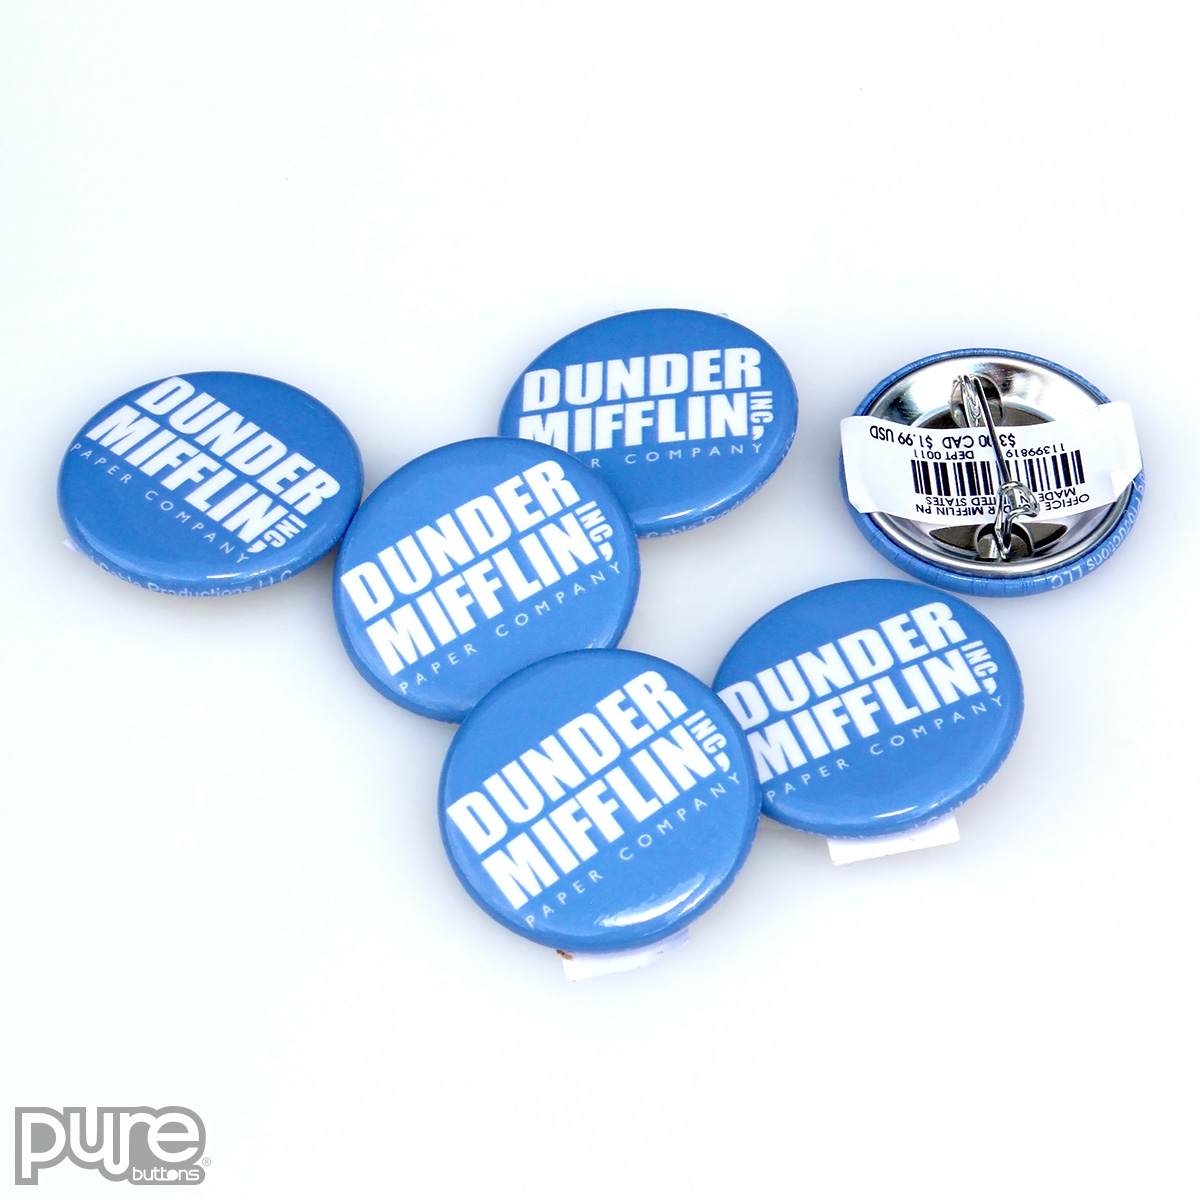 The Office NBC Official Merchandise - Dunder Mifflin Pin-Back Buttons